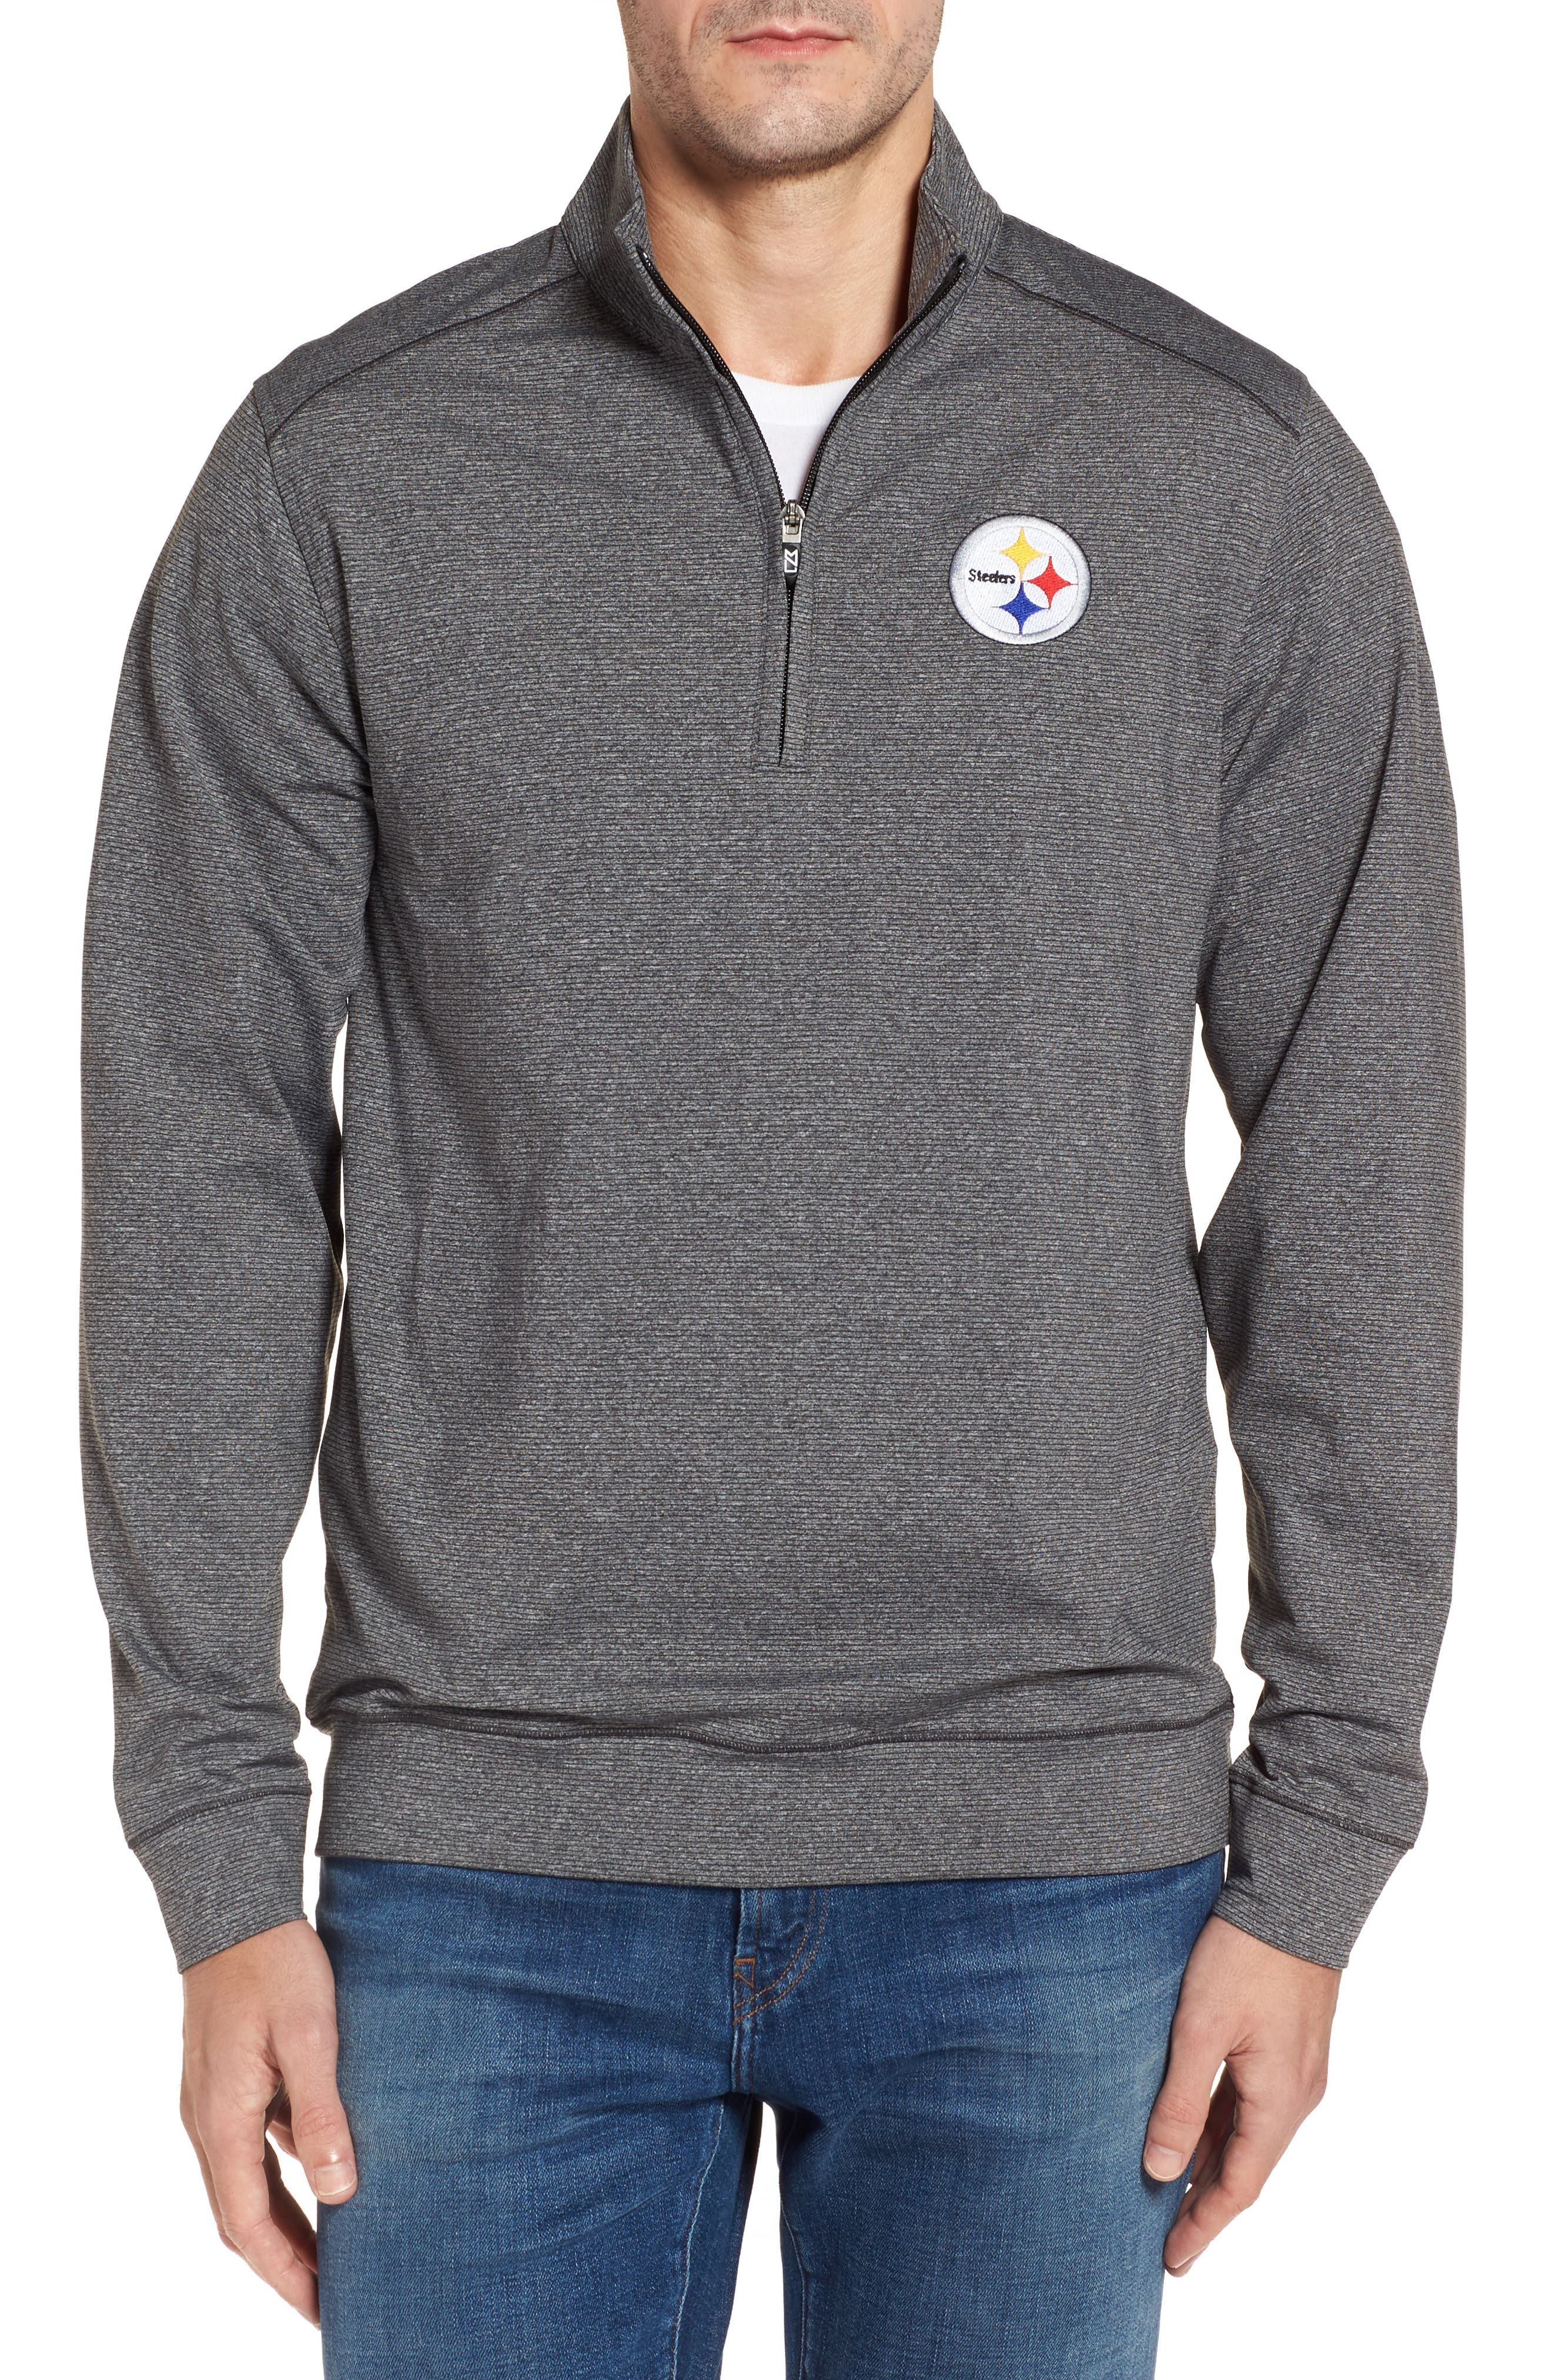 Shoreline - Pittsburgh Steelers Half Zip Pullover,                         Main,                         color, Charcoal Heather